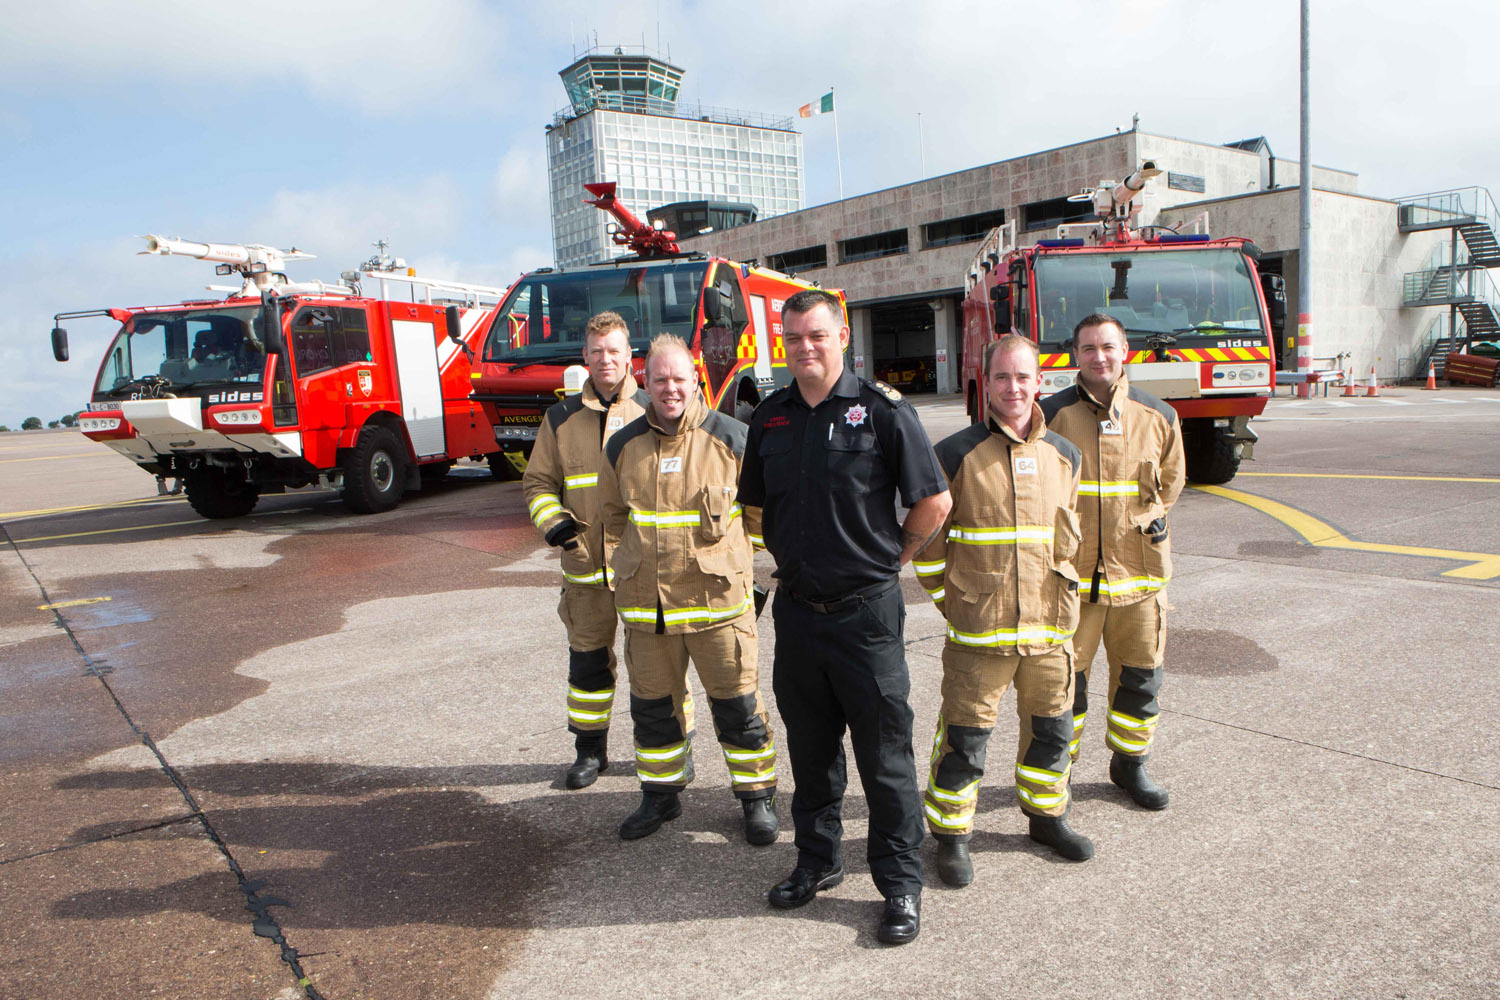 "DKANE 15082016 REPRO FREE Crew Commander Ted Brady, Fire Fighter Alan Crowley, Chief Fire Officer Jim Johnson, Fire Fighter Michael Hegarty and Fire Fighter Stephen O'Mahony to mark the 10th birthday of new terminal in Cork Airport. Cork Airport celebrated the 10th birthday of its terminal building today. Since it first opened in August 2006, over 25 million people have travelled through Cork Airport's ""state of the art"" terminal and facilities. Niall MacCarthy, Managing Director at Cork Airport said: ""We wanted to mark the important occasion of the 10th anniversary of the new terminal building. It is a wonderful facility for the South of Ireland and still looks new even after the 10 years. This is a tribute to the foresight of the designers and the quality of the maintenance programme and staff since its opening 10 years ago. Pic Darragh Kane"